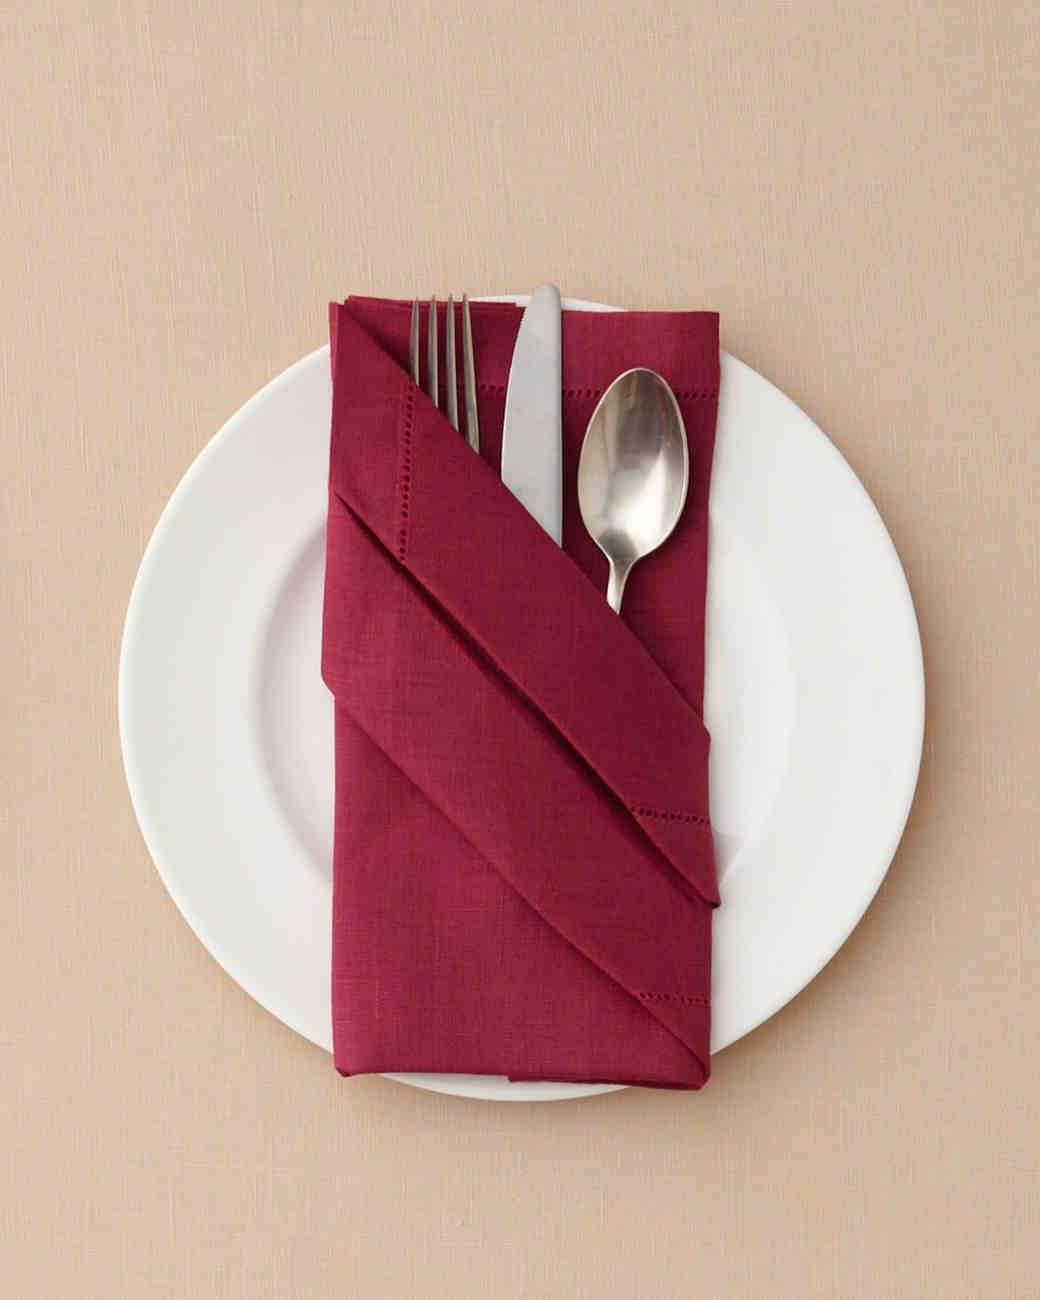 7 Ways To Fold A Table Napkin For Your Day And Every Martha Weddings